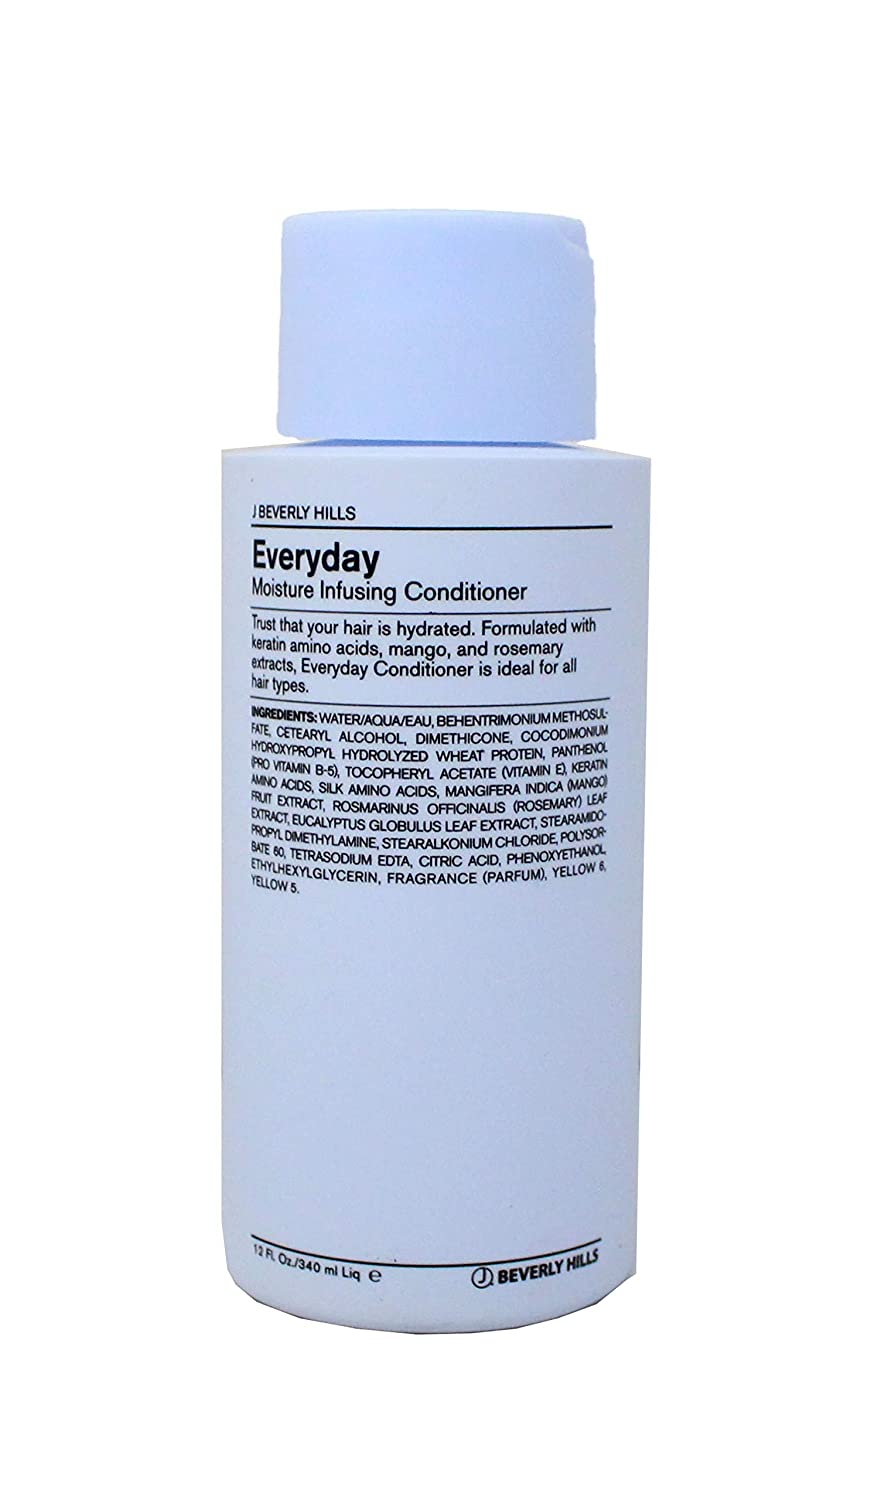 J Beverly Hills Blue Everyday Conditioner, Moisture Infusing Conditioner, 12 oz Bottle